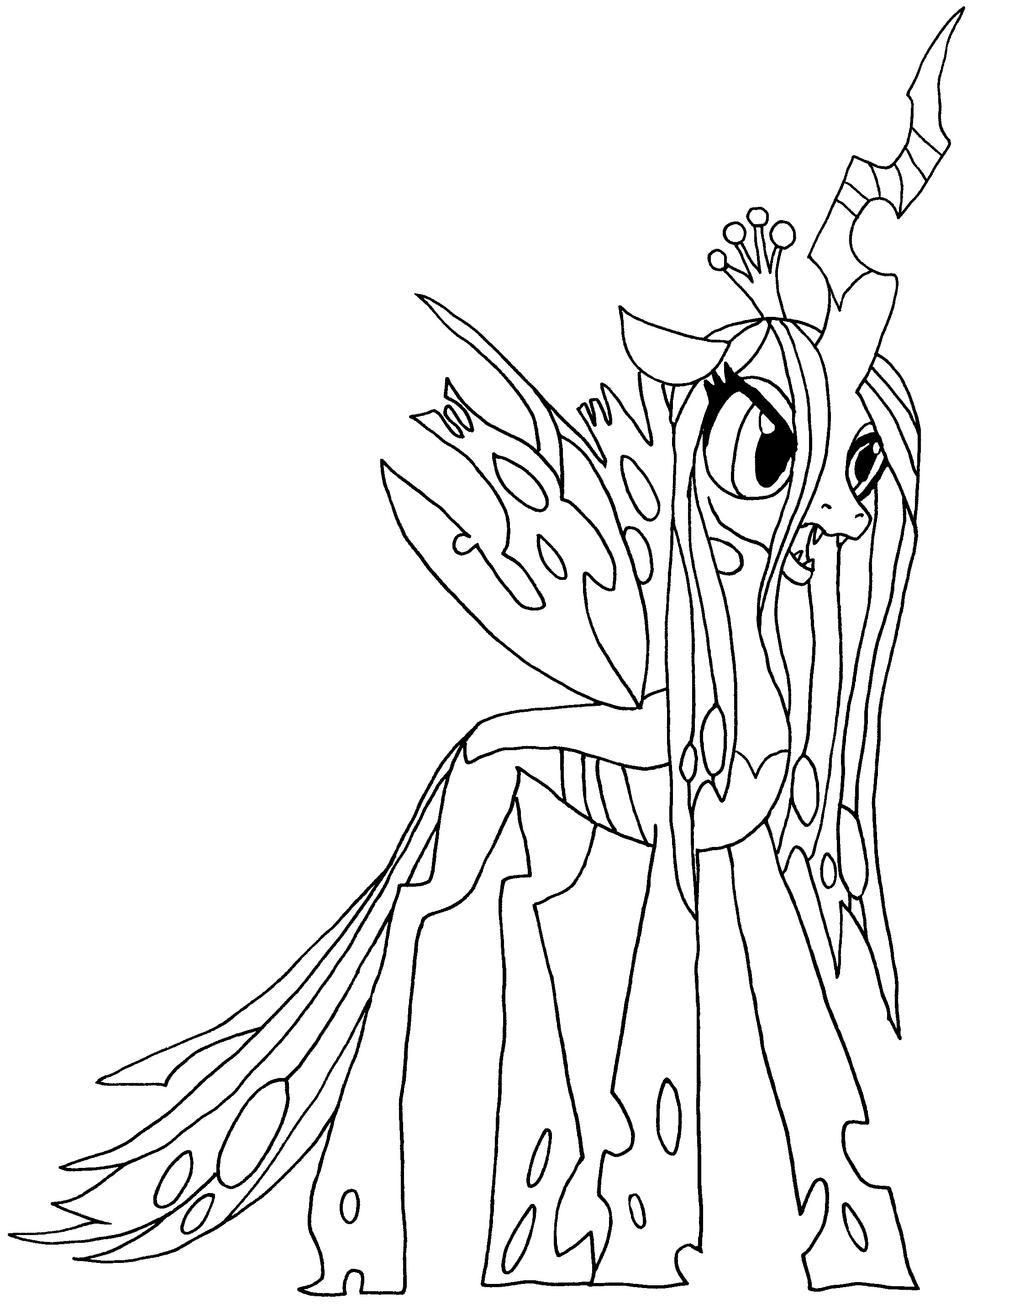 Chrysalis By Elfkena On Deviantart Chrysalis Coloring Pages